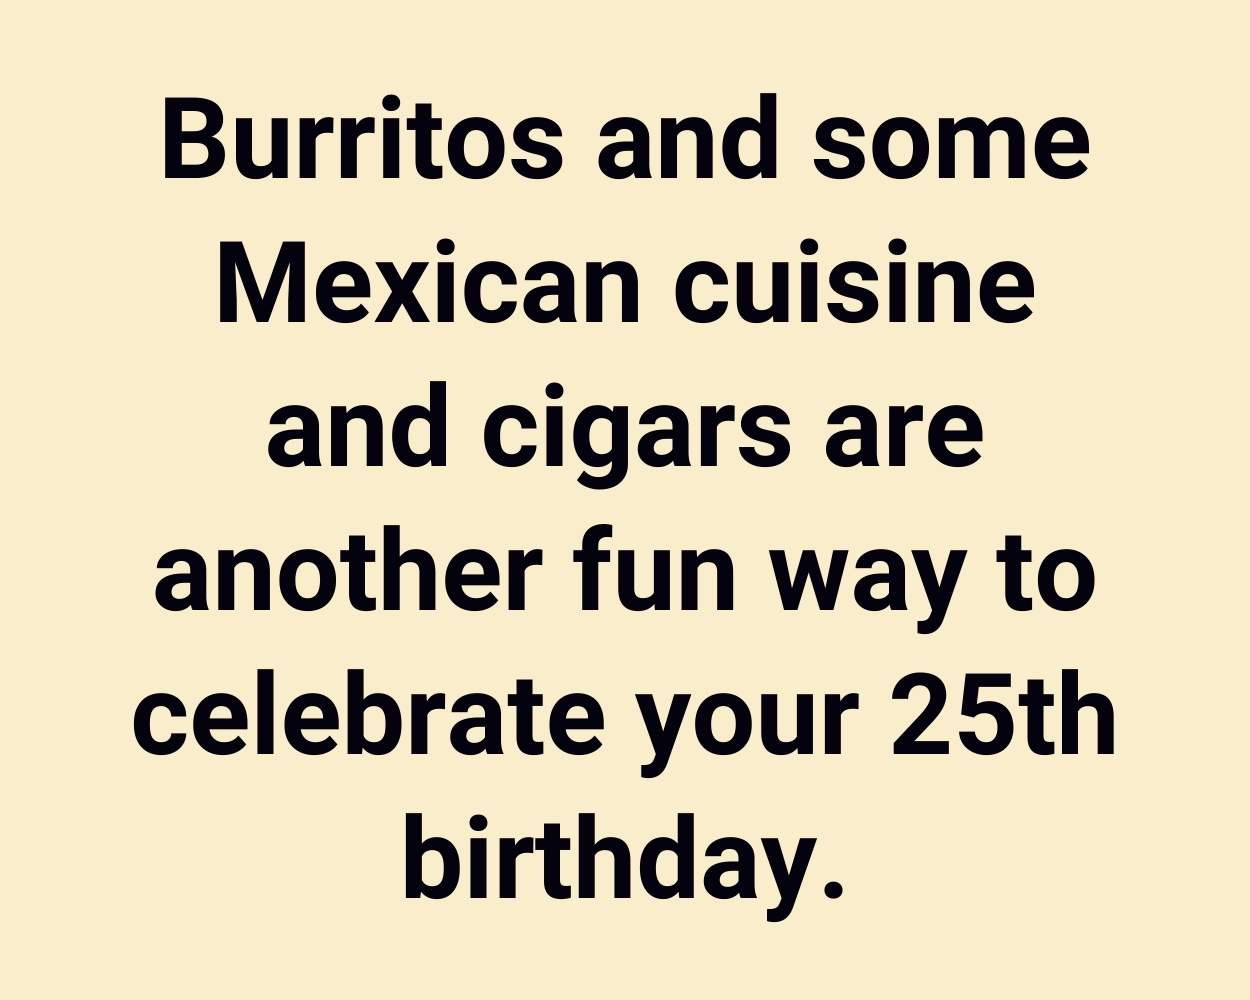 Burritos and some Mexican cuisine and cigars are another fun way to celebrate your 25th birthday.